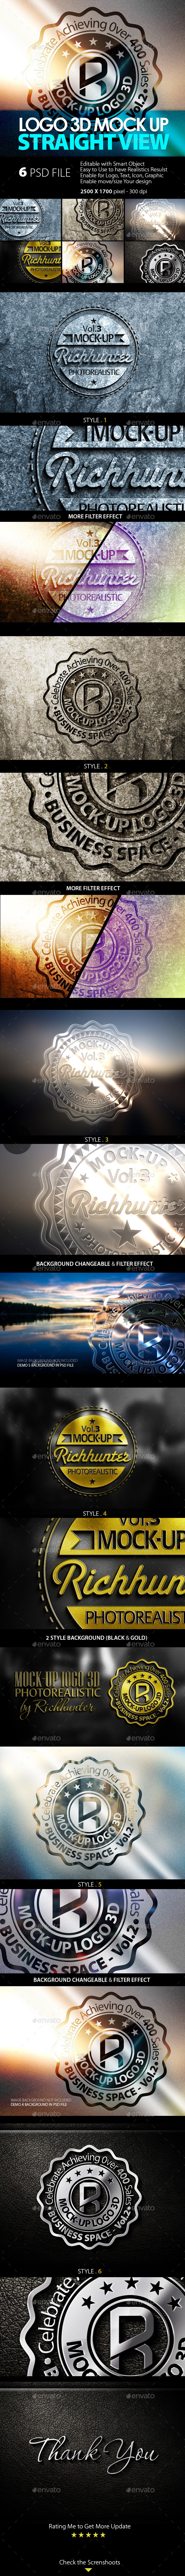 GraphicRiver Mock-Up Logo 3D Straight View Vol.3 8939938